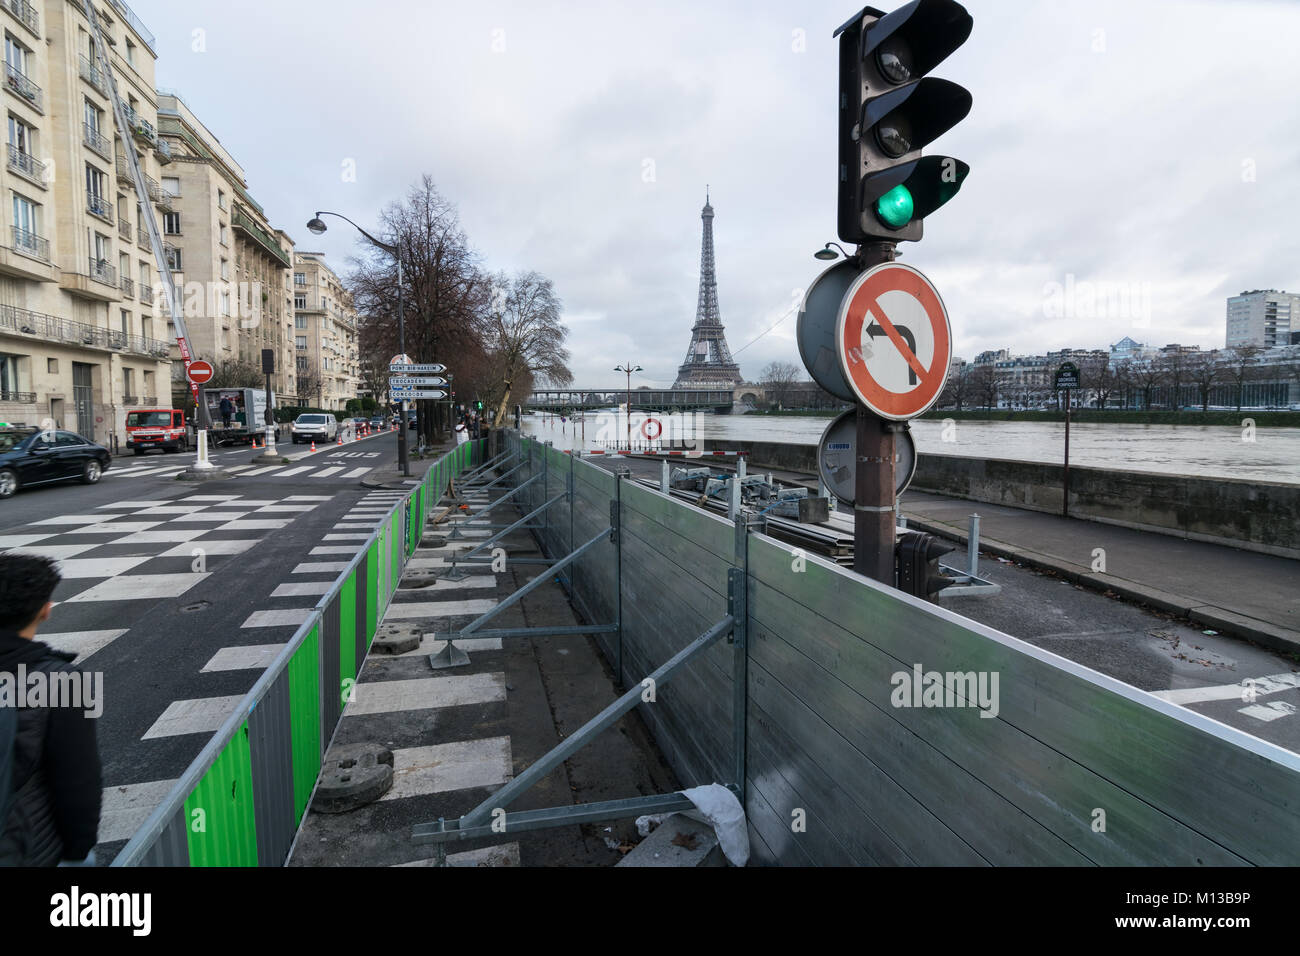 Paris, France. 26th January, 2018. Flood water rising in Paris, River Seine in flood Credit: RichFearon/Alamy Live - Stock Image